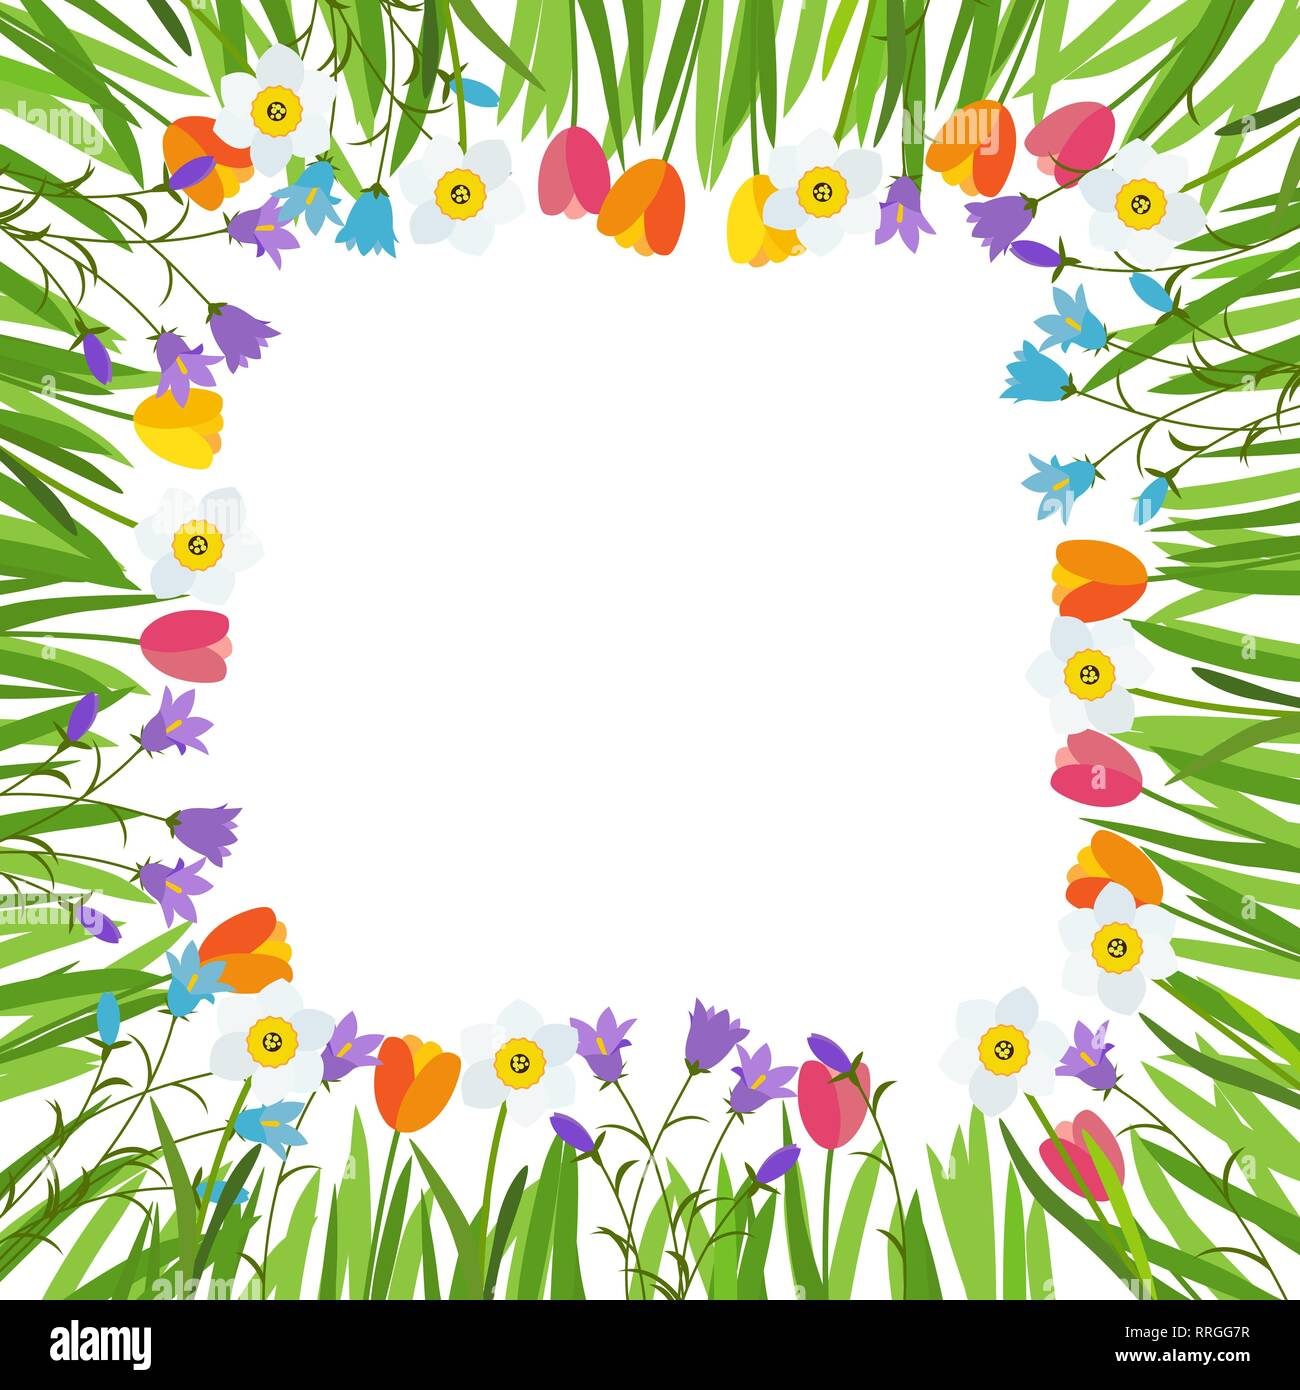 Spring Tulip Bluebell Narcissus Flowers Background Vector